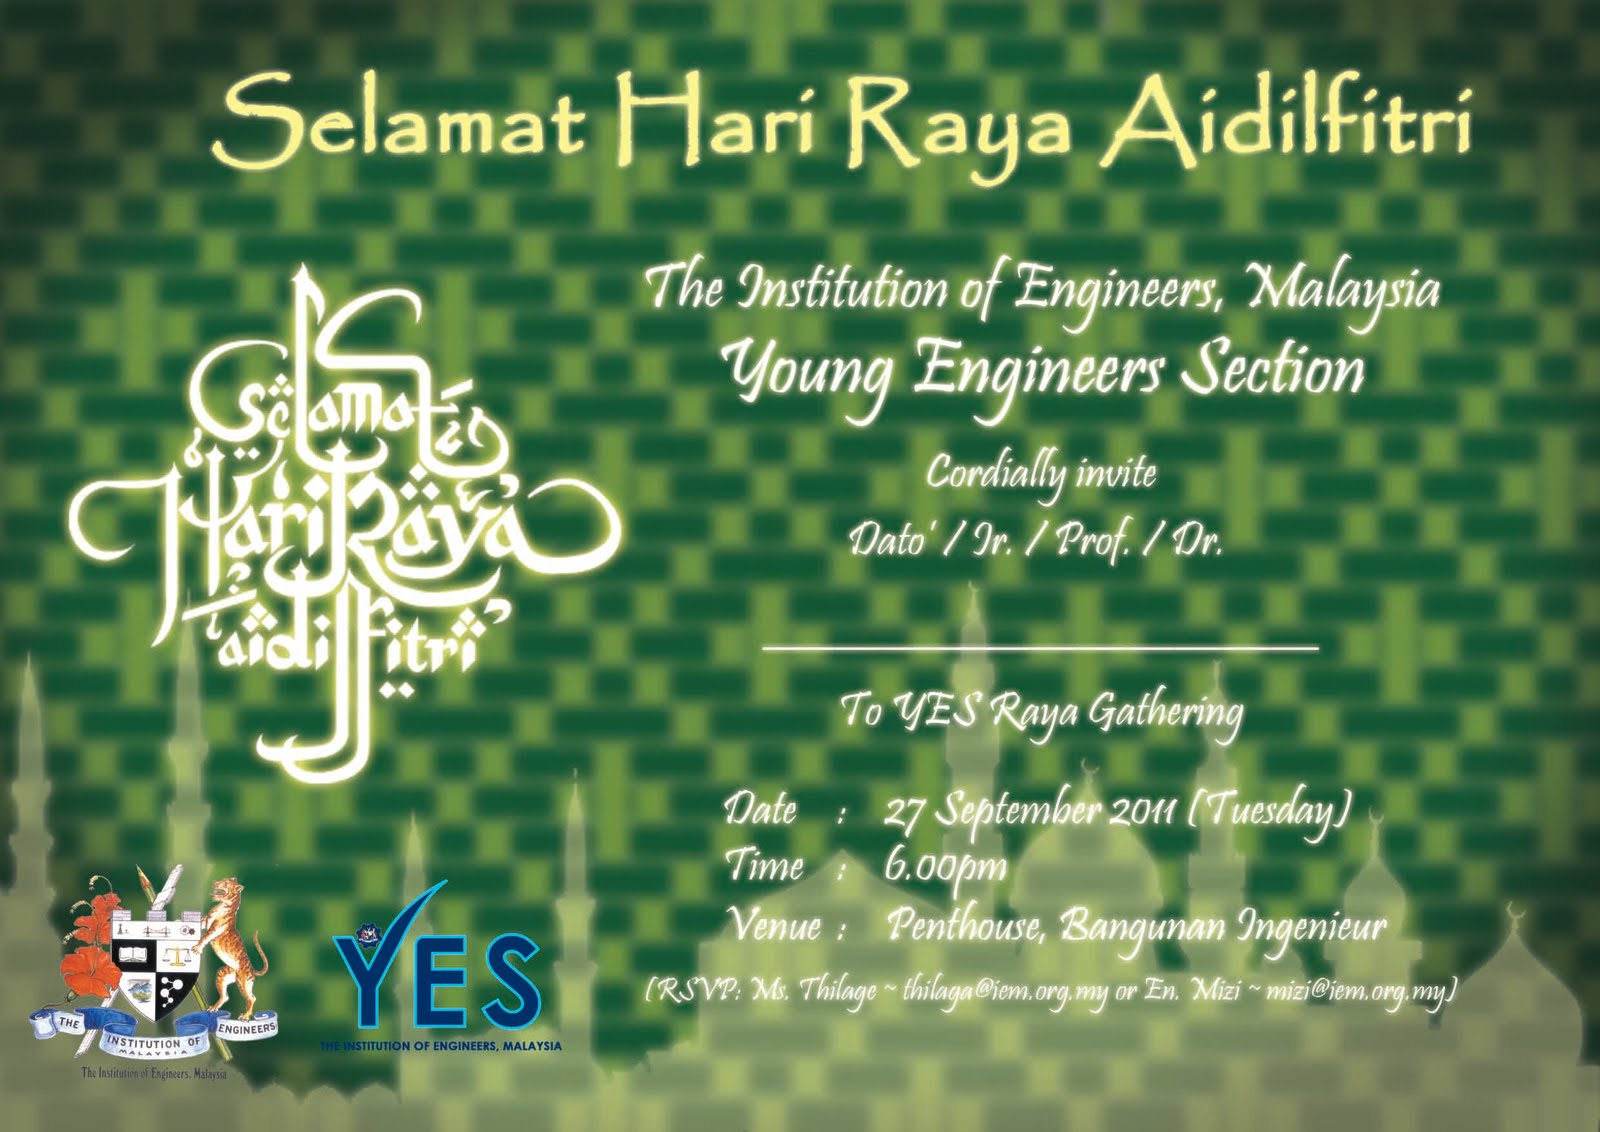 Iem gs yes event raya gathering invitation event raya gathering invitation stopboris